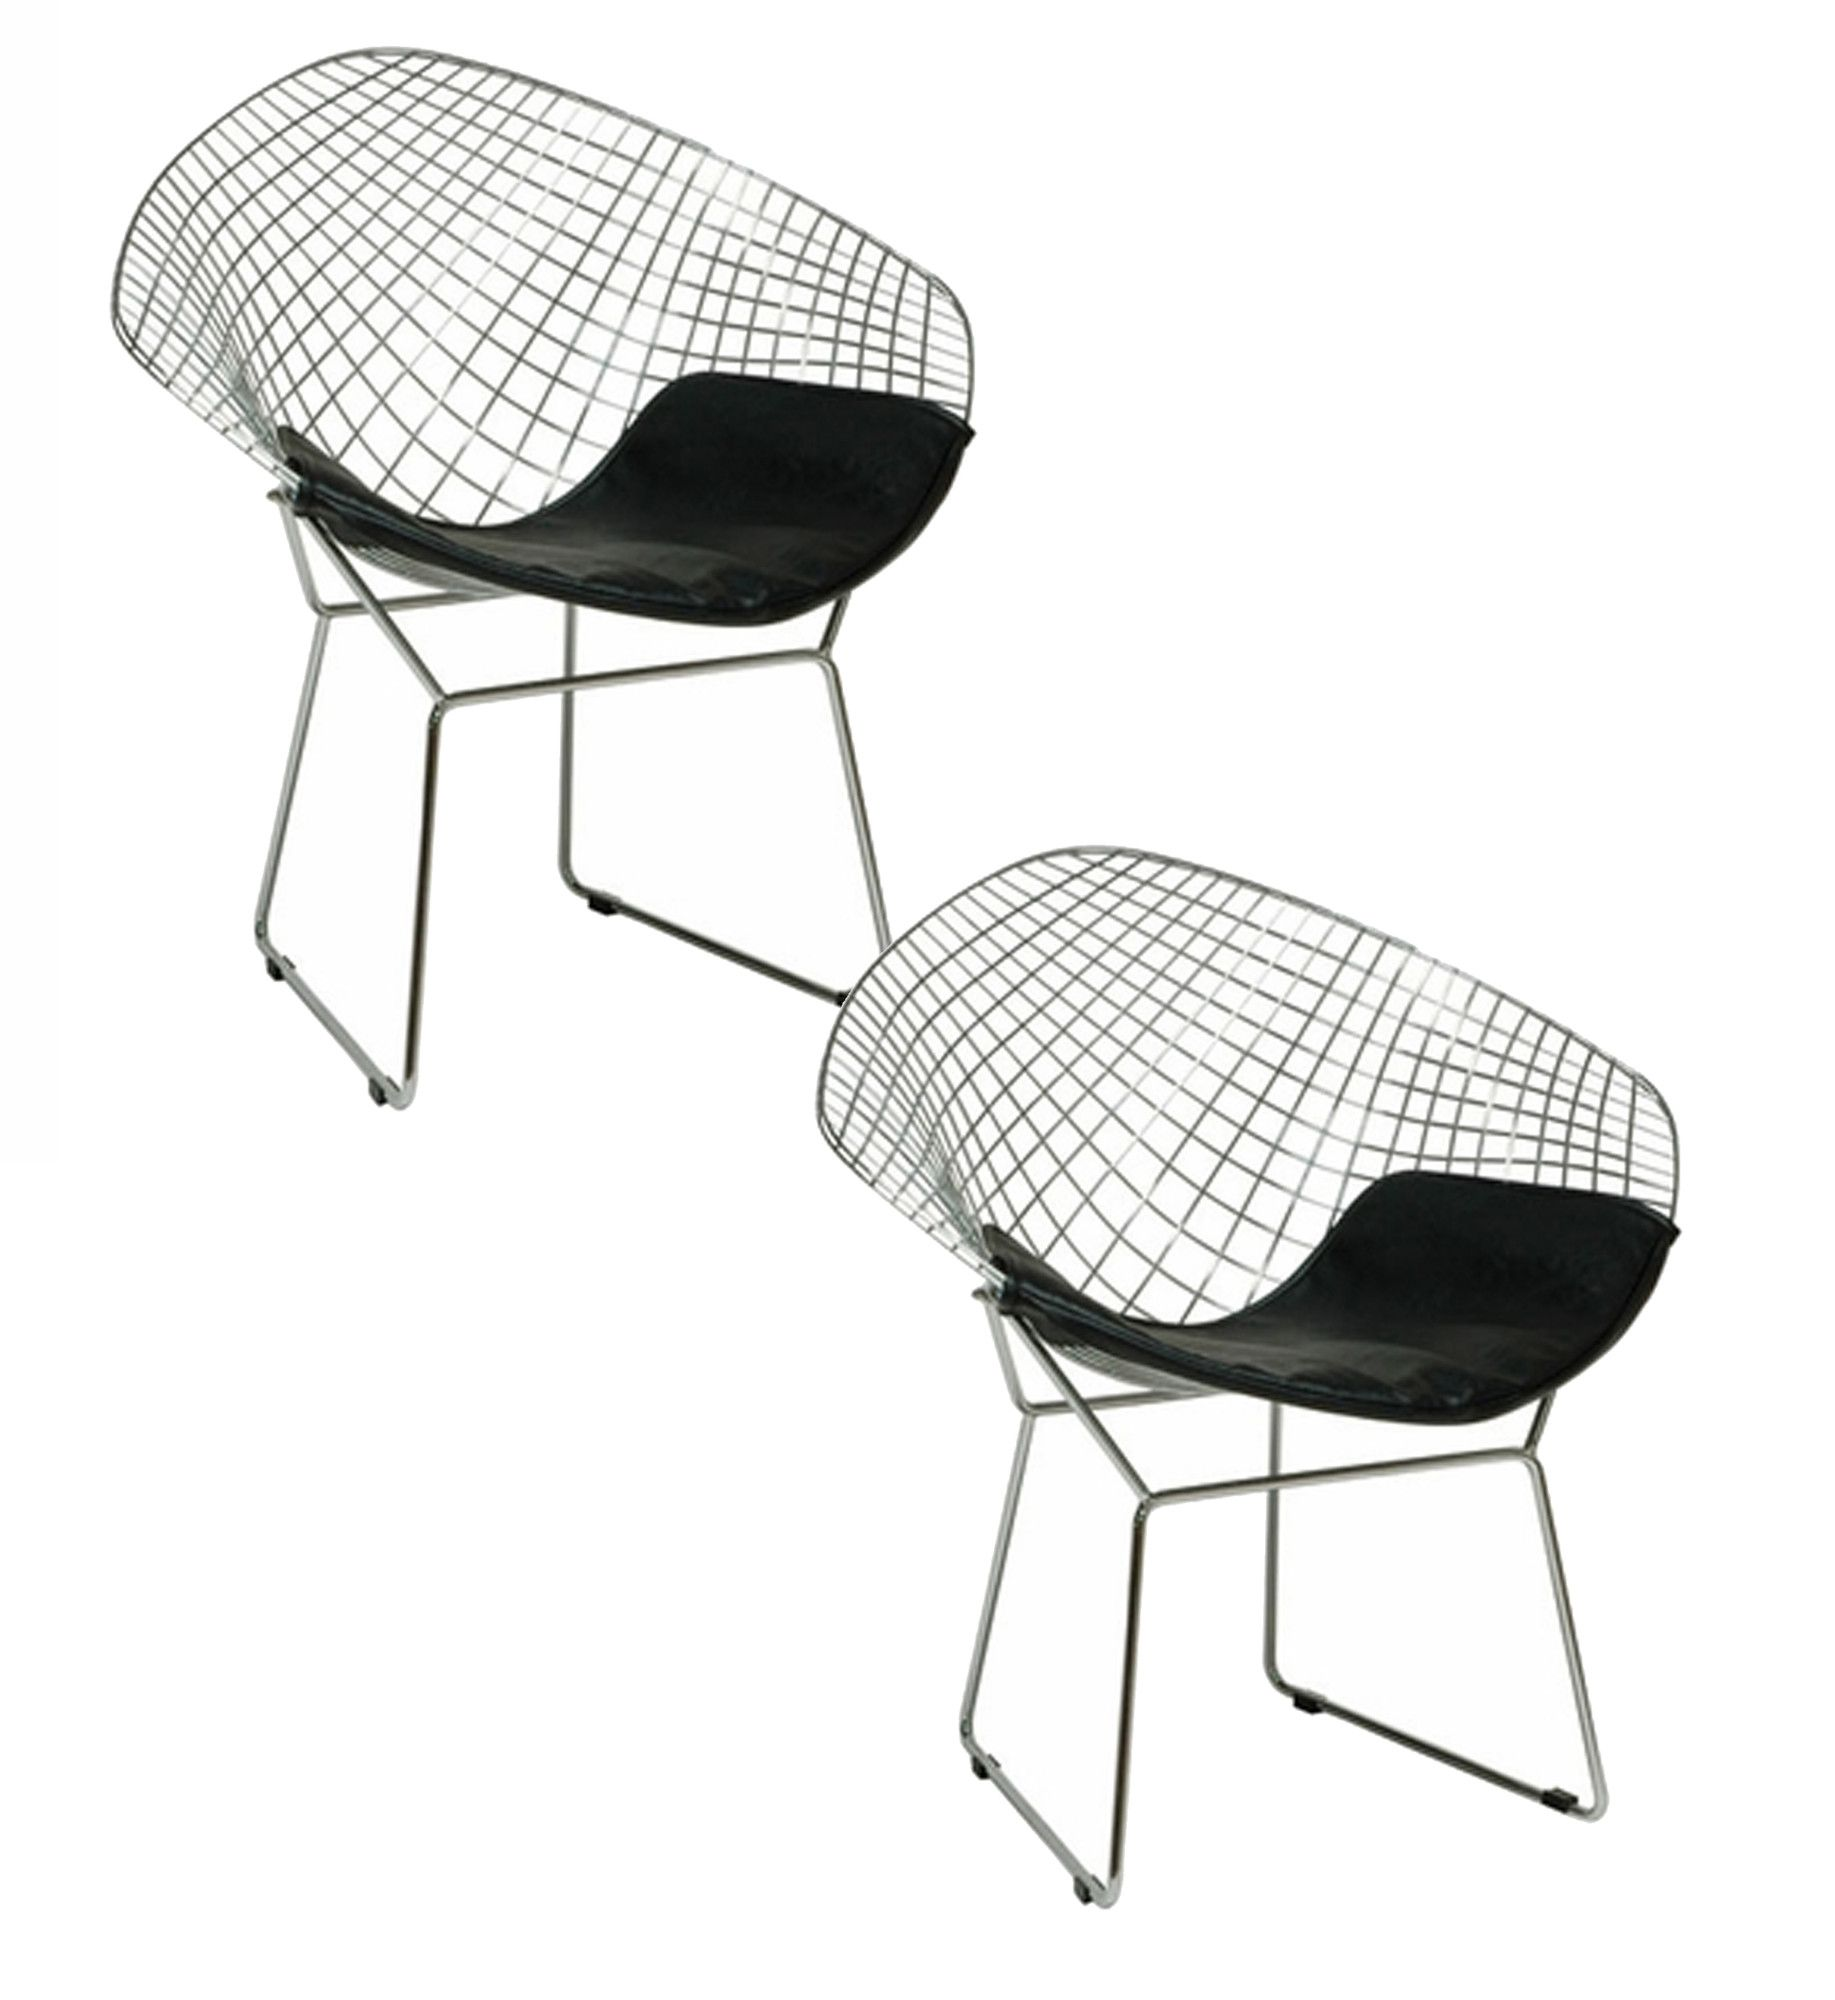 galaxy wire papasan chair set of 2 products pinterest galaxy wire papasan chair set of 2